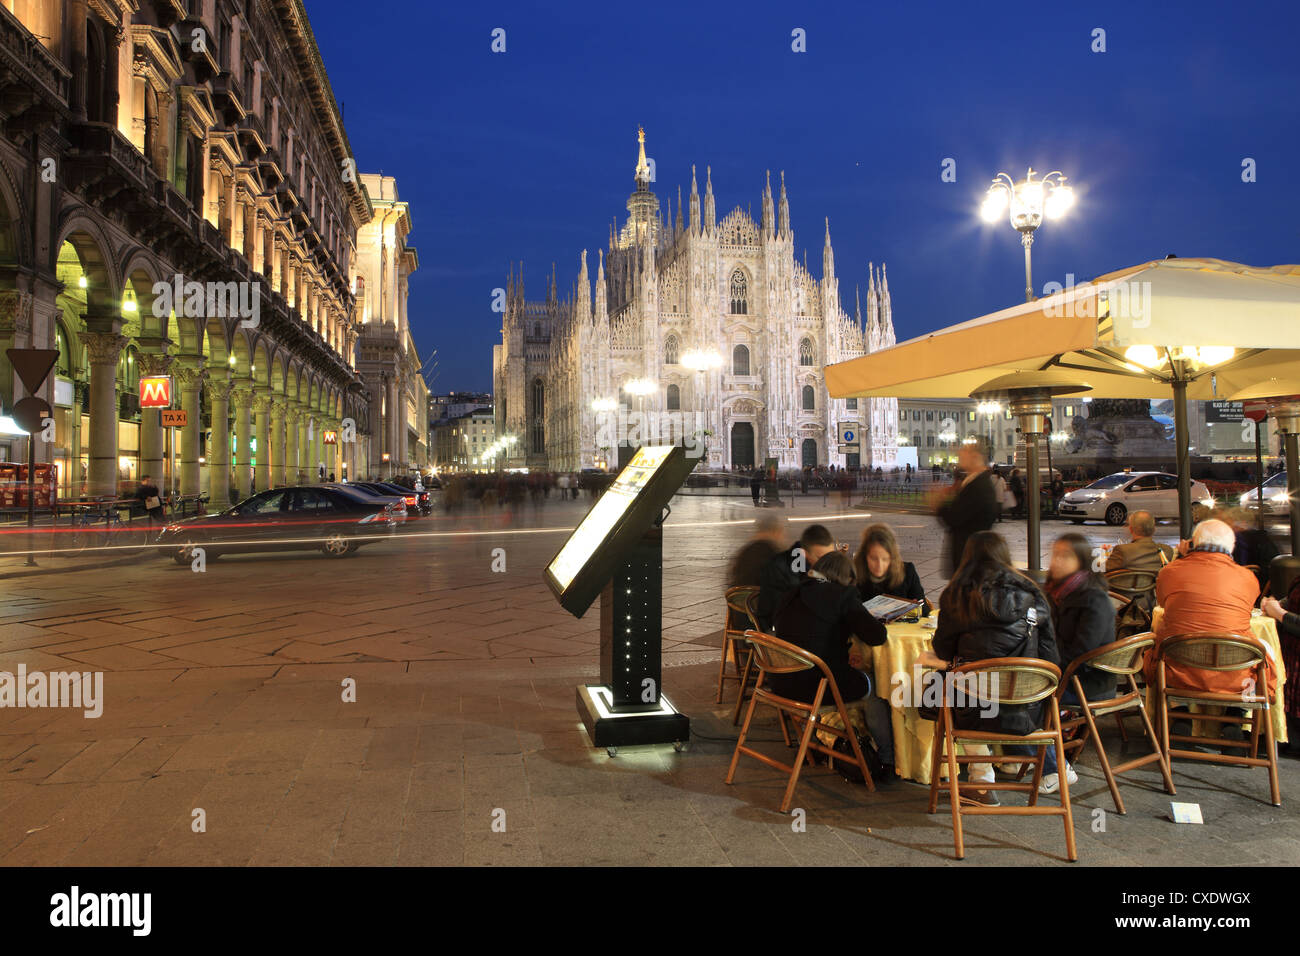 Restaurant in Piazza Duomo at dusk, Milan, Lombardy, Italy, Europe - Stock Image